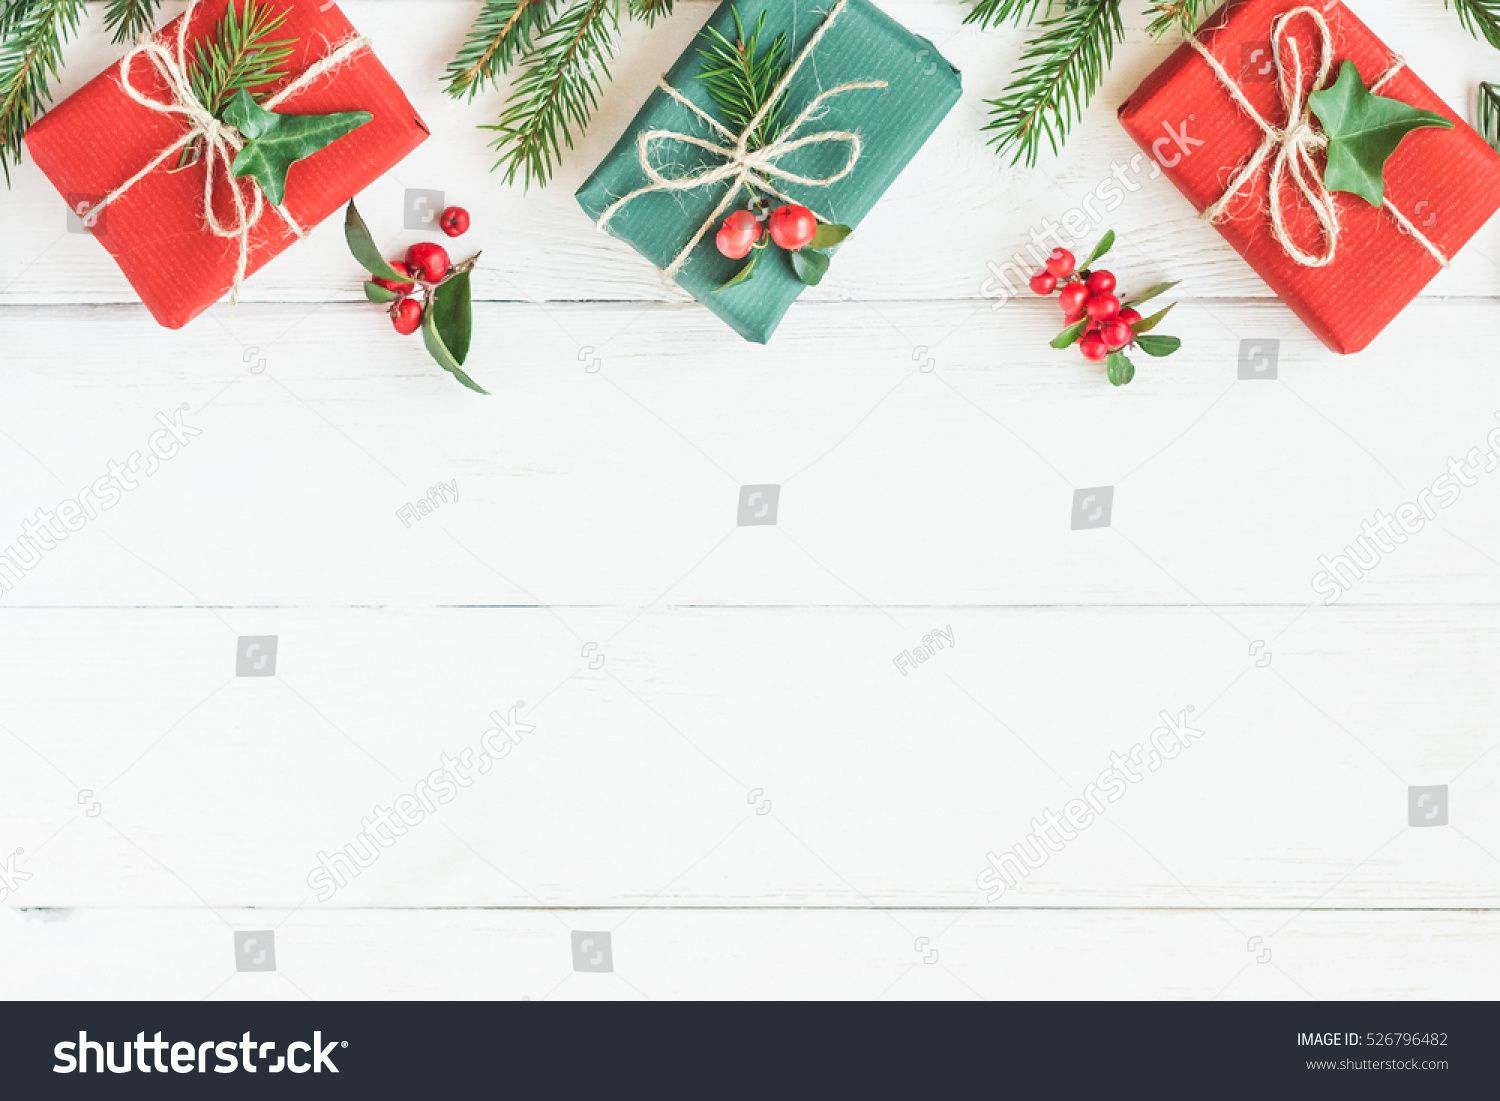 Christmas Top View.Christmas Border Christmas Gifts Fir Branches On Wooden